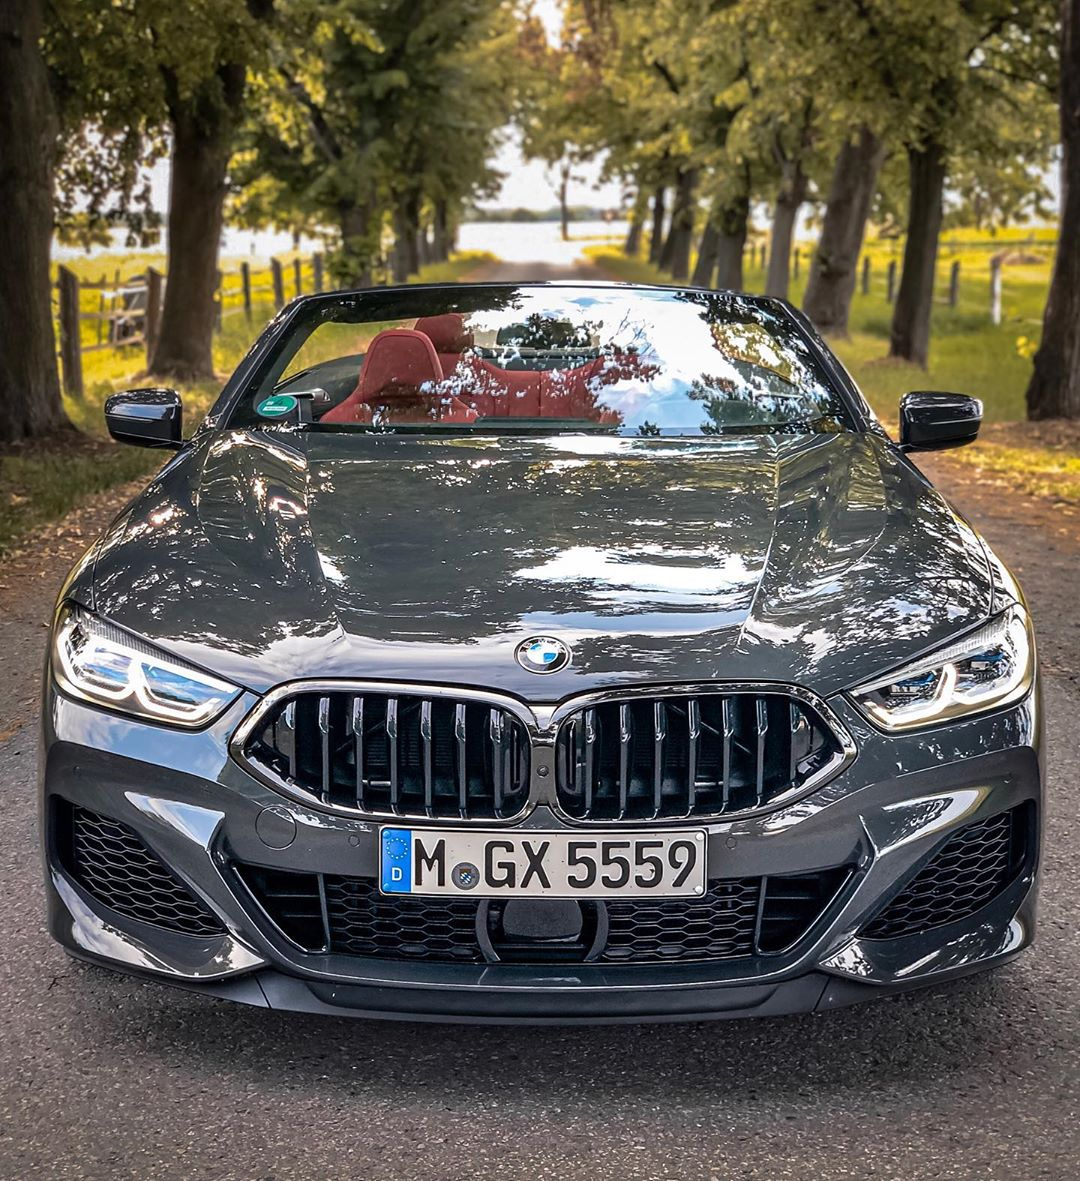 Wow! This thing really rockets from the block…0-250, 100-200 times…full video out on YouTube酪 @bmwm @bmw #bmw #bmwm #m850i #m850 #850i #m850iconvertible #mperformance #automanntv #m8 #bmwm8